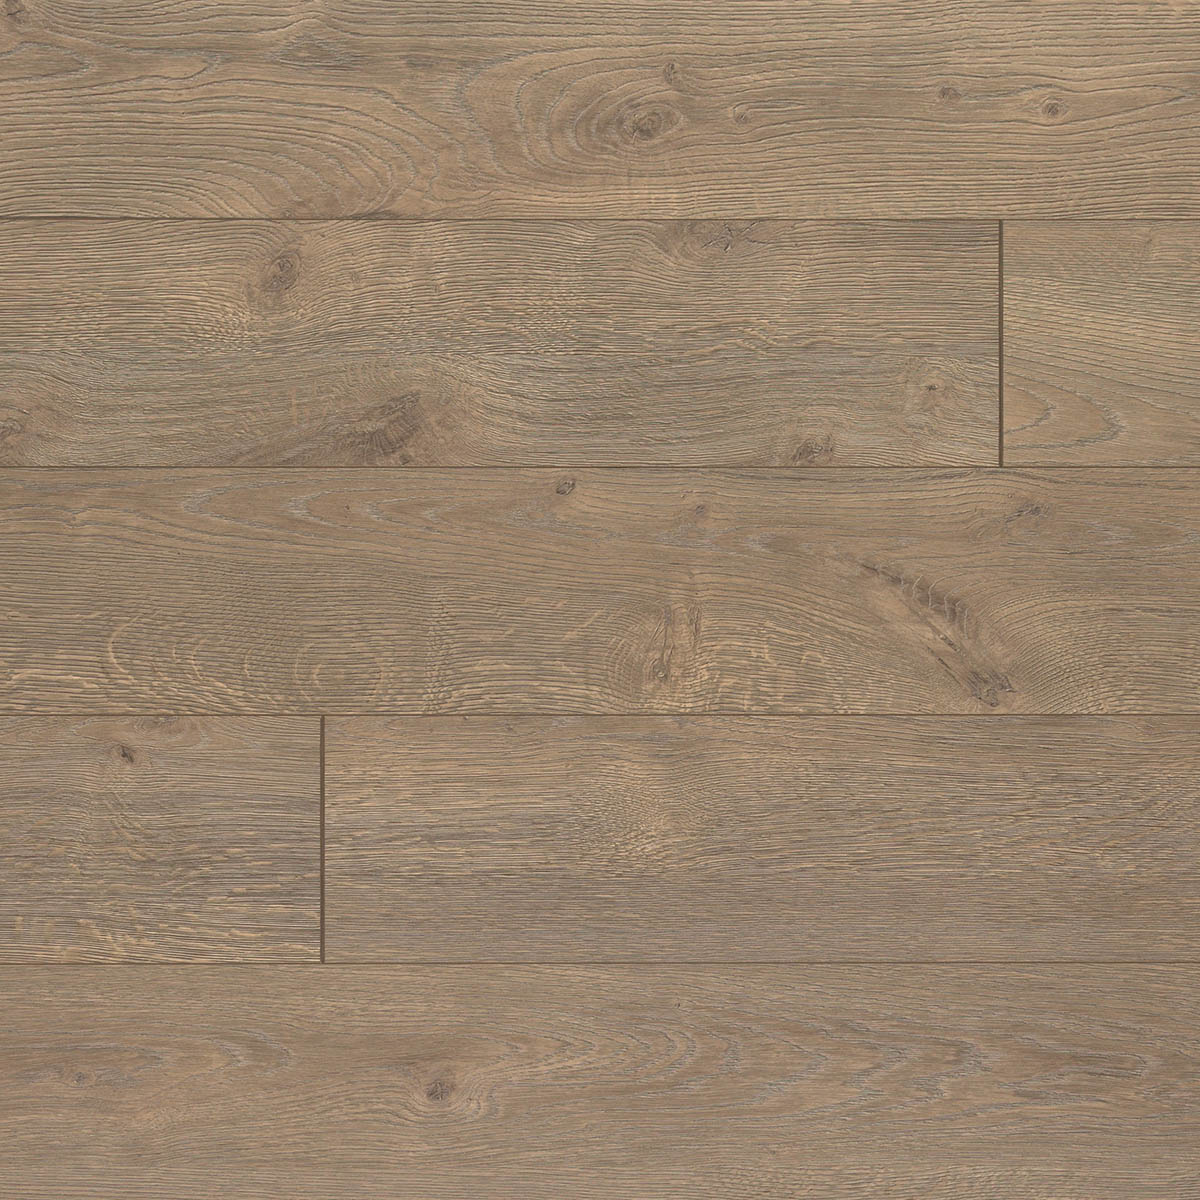 Cork Flooring Sacramento: Quick-Step Elevae Tranquil Oak Laminate Flooring